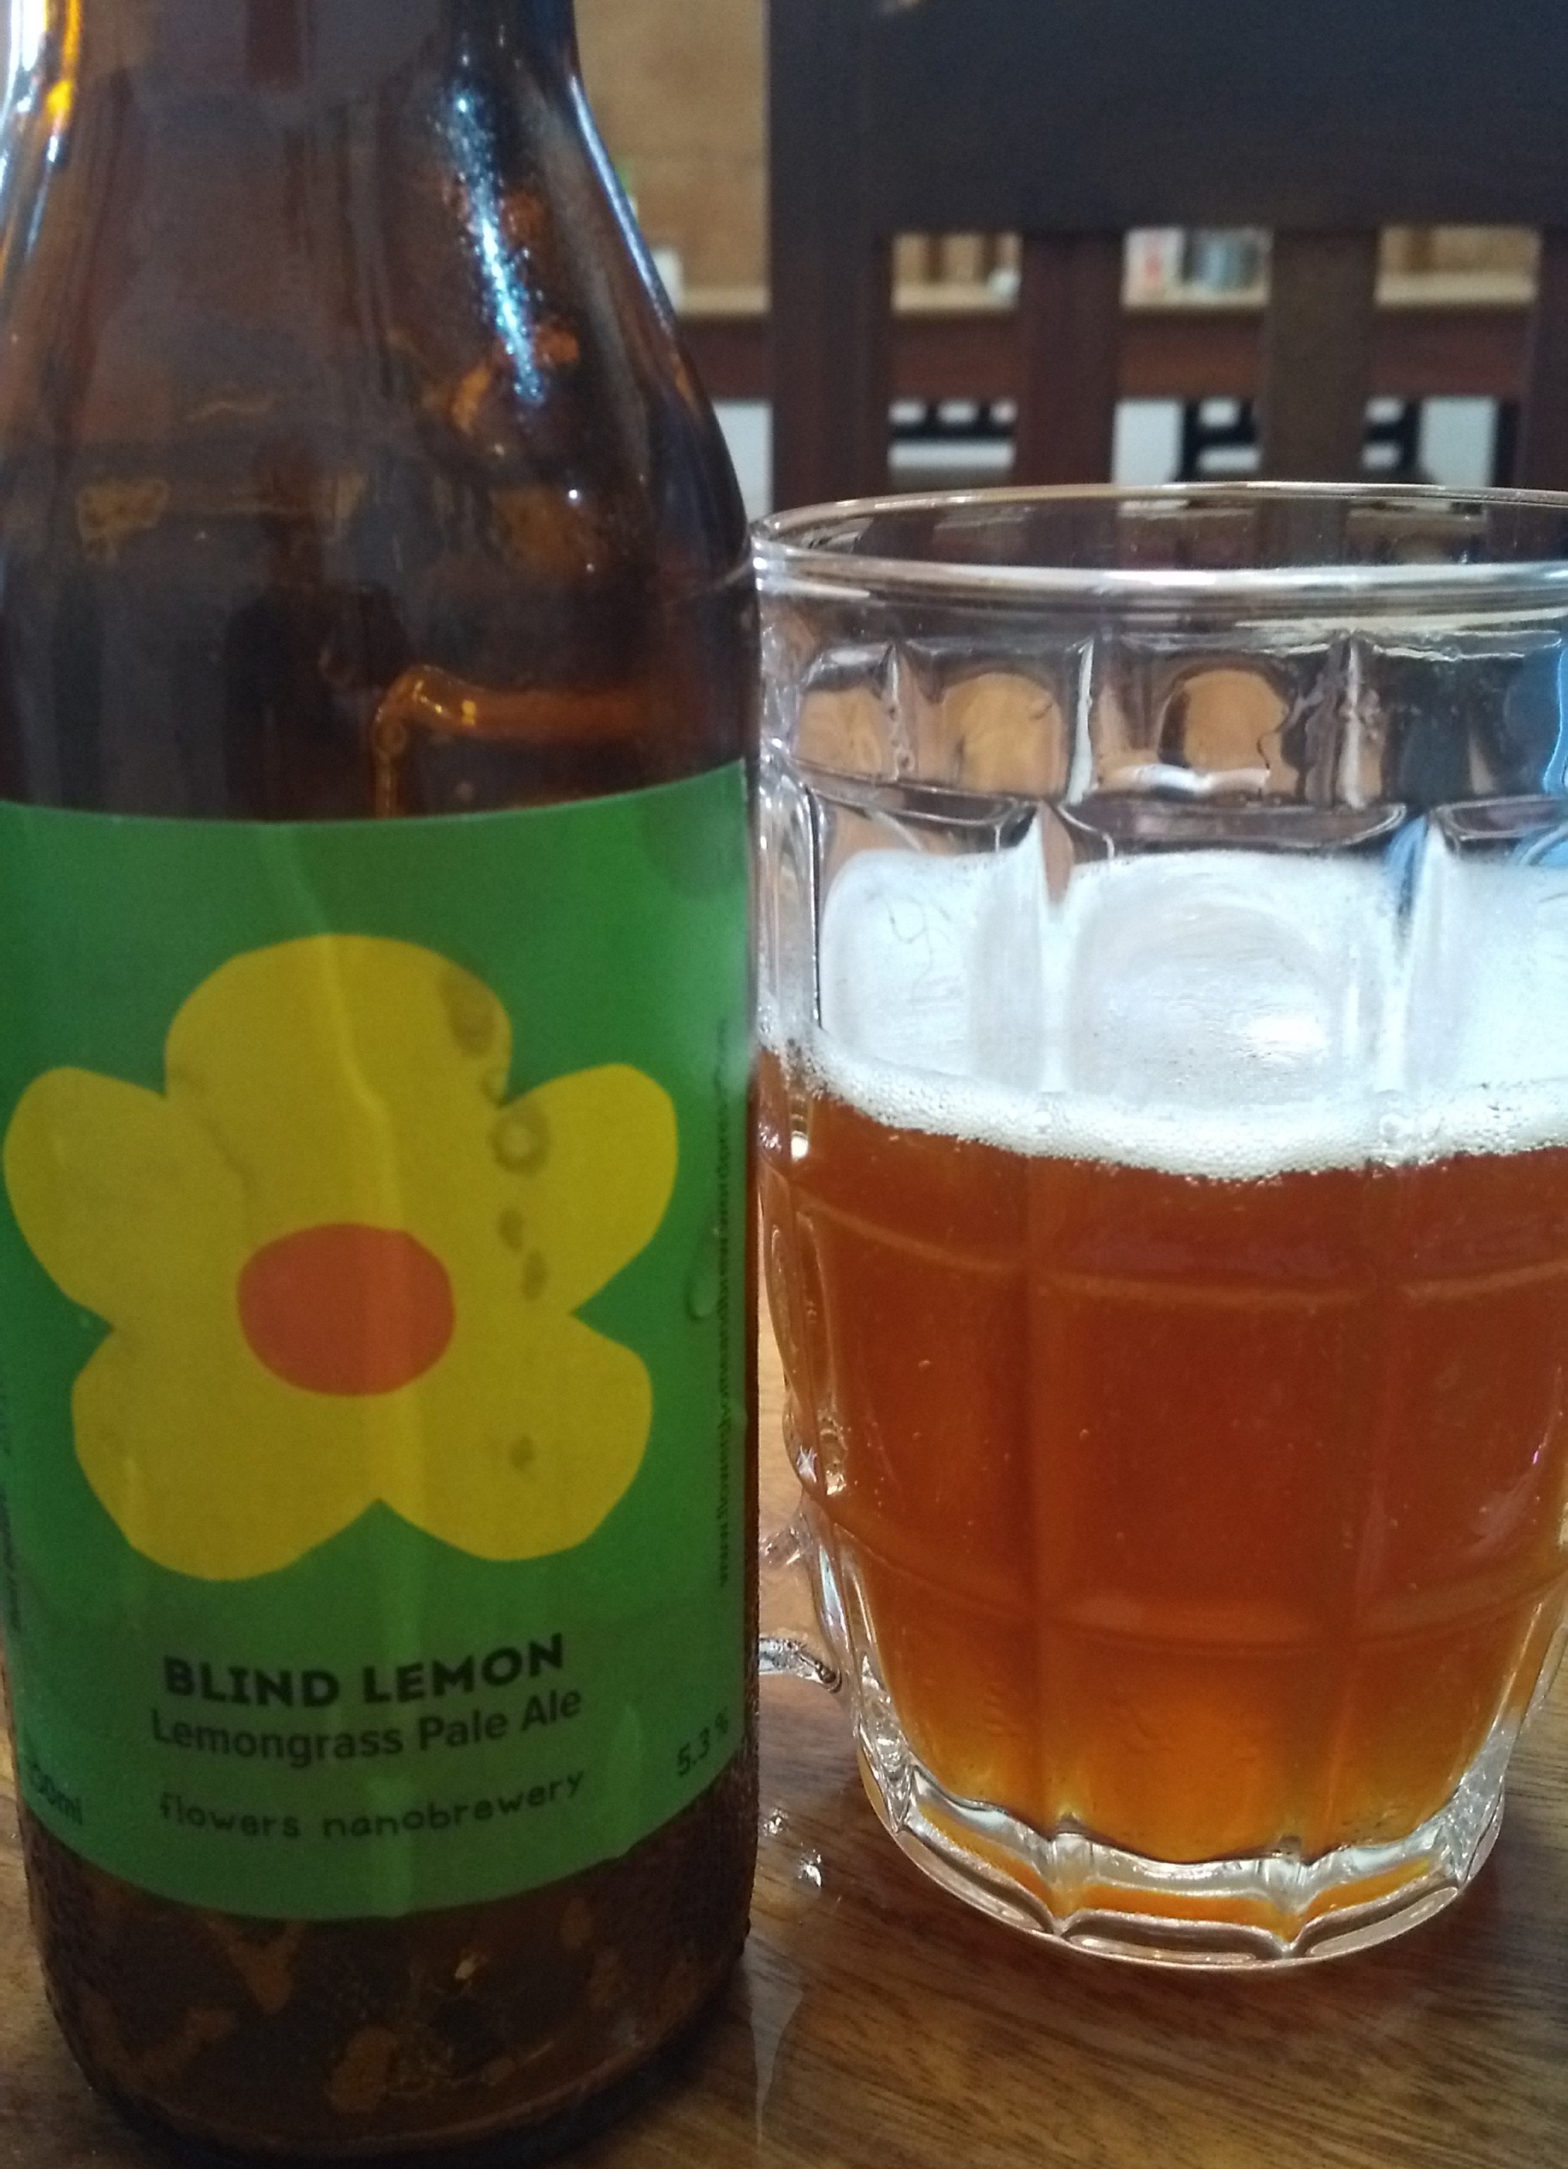 Blind Lemon Lemongrass Pale Ale Cambodian Craft Beer Review